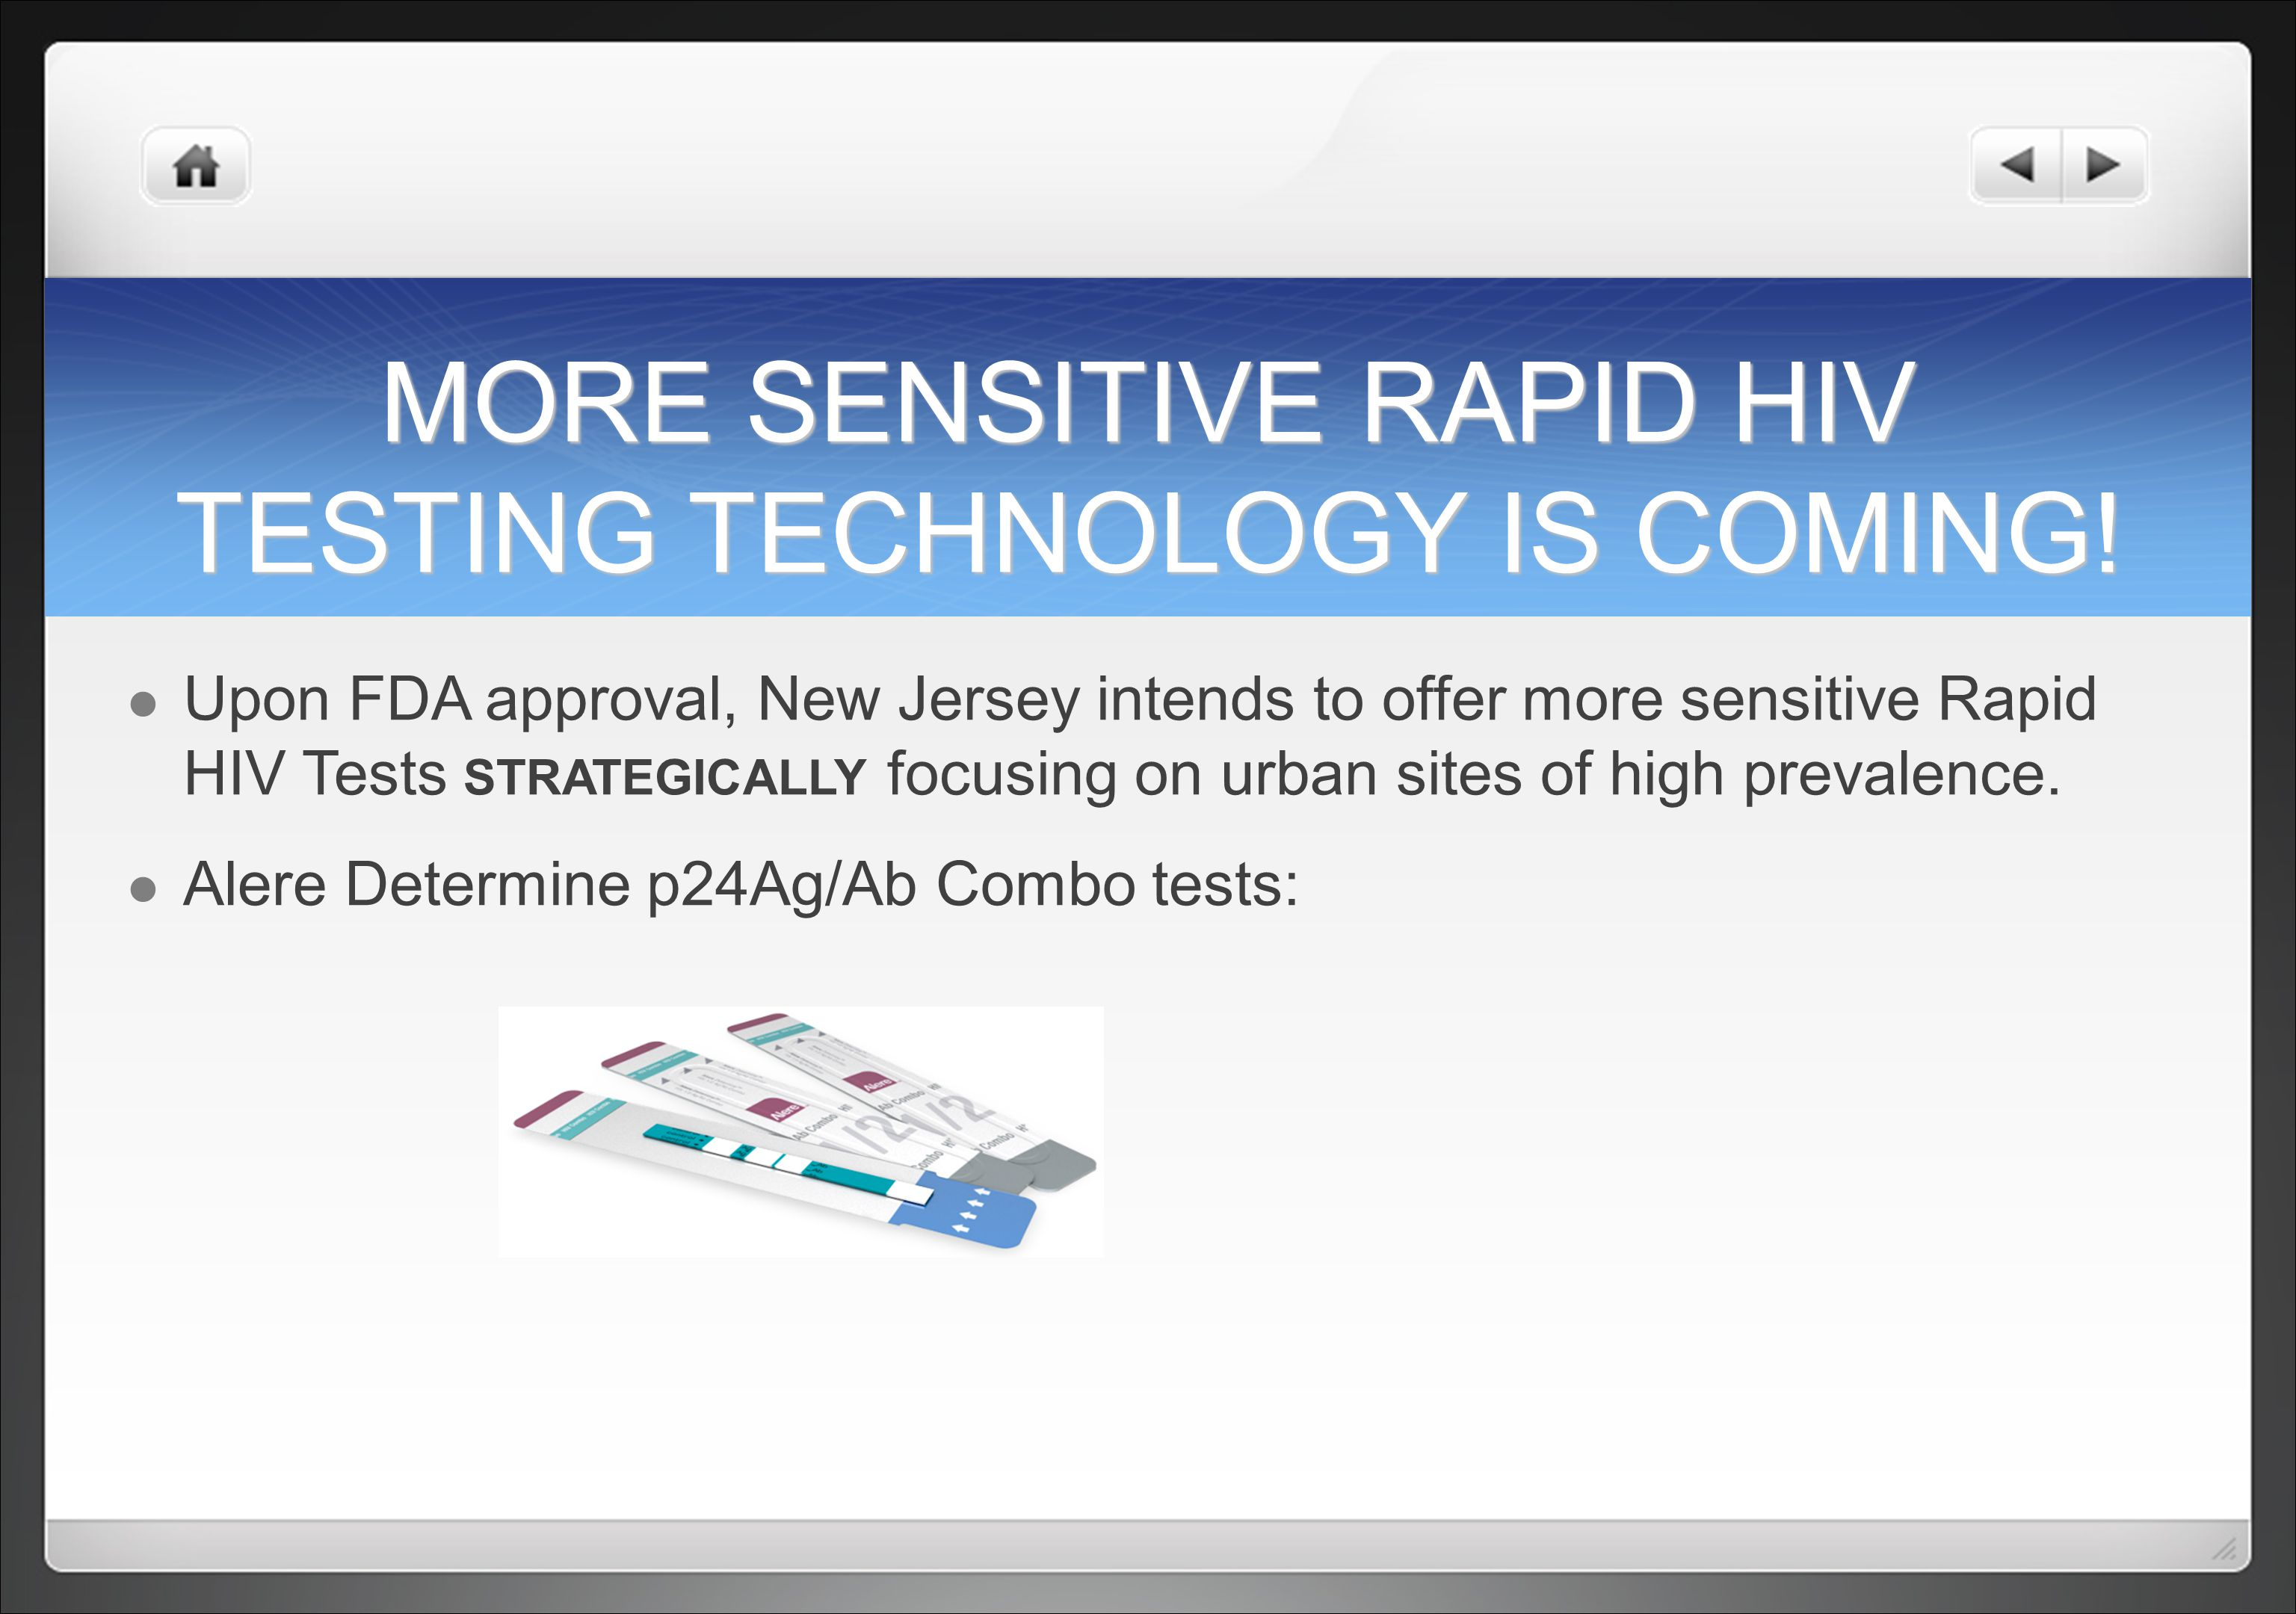 MORE SENSITIVE RAPID HIV TESTING TECHNOLOGY IS COMING! Upon FDA approval, New Jersey intends to offer more sensitive Rapid HIV Tests STRATEGICALLY foc